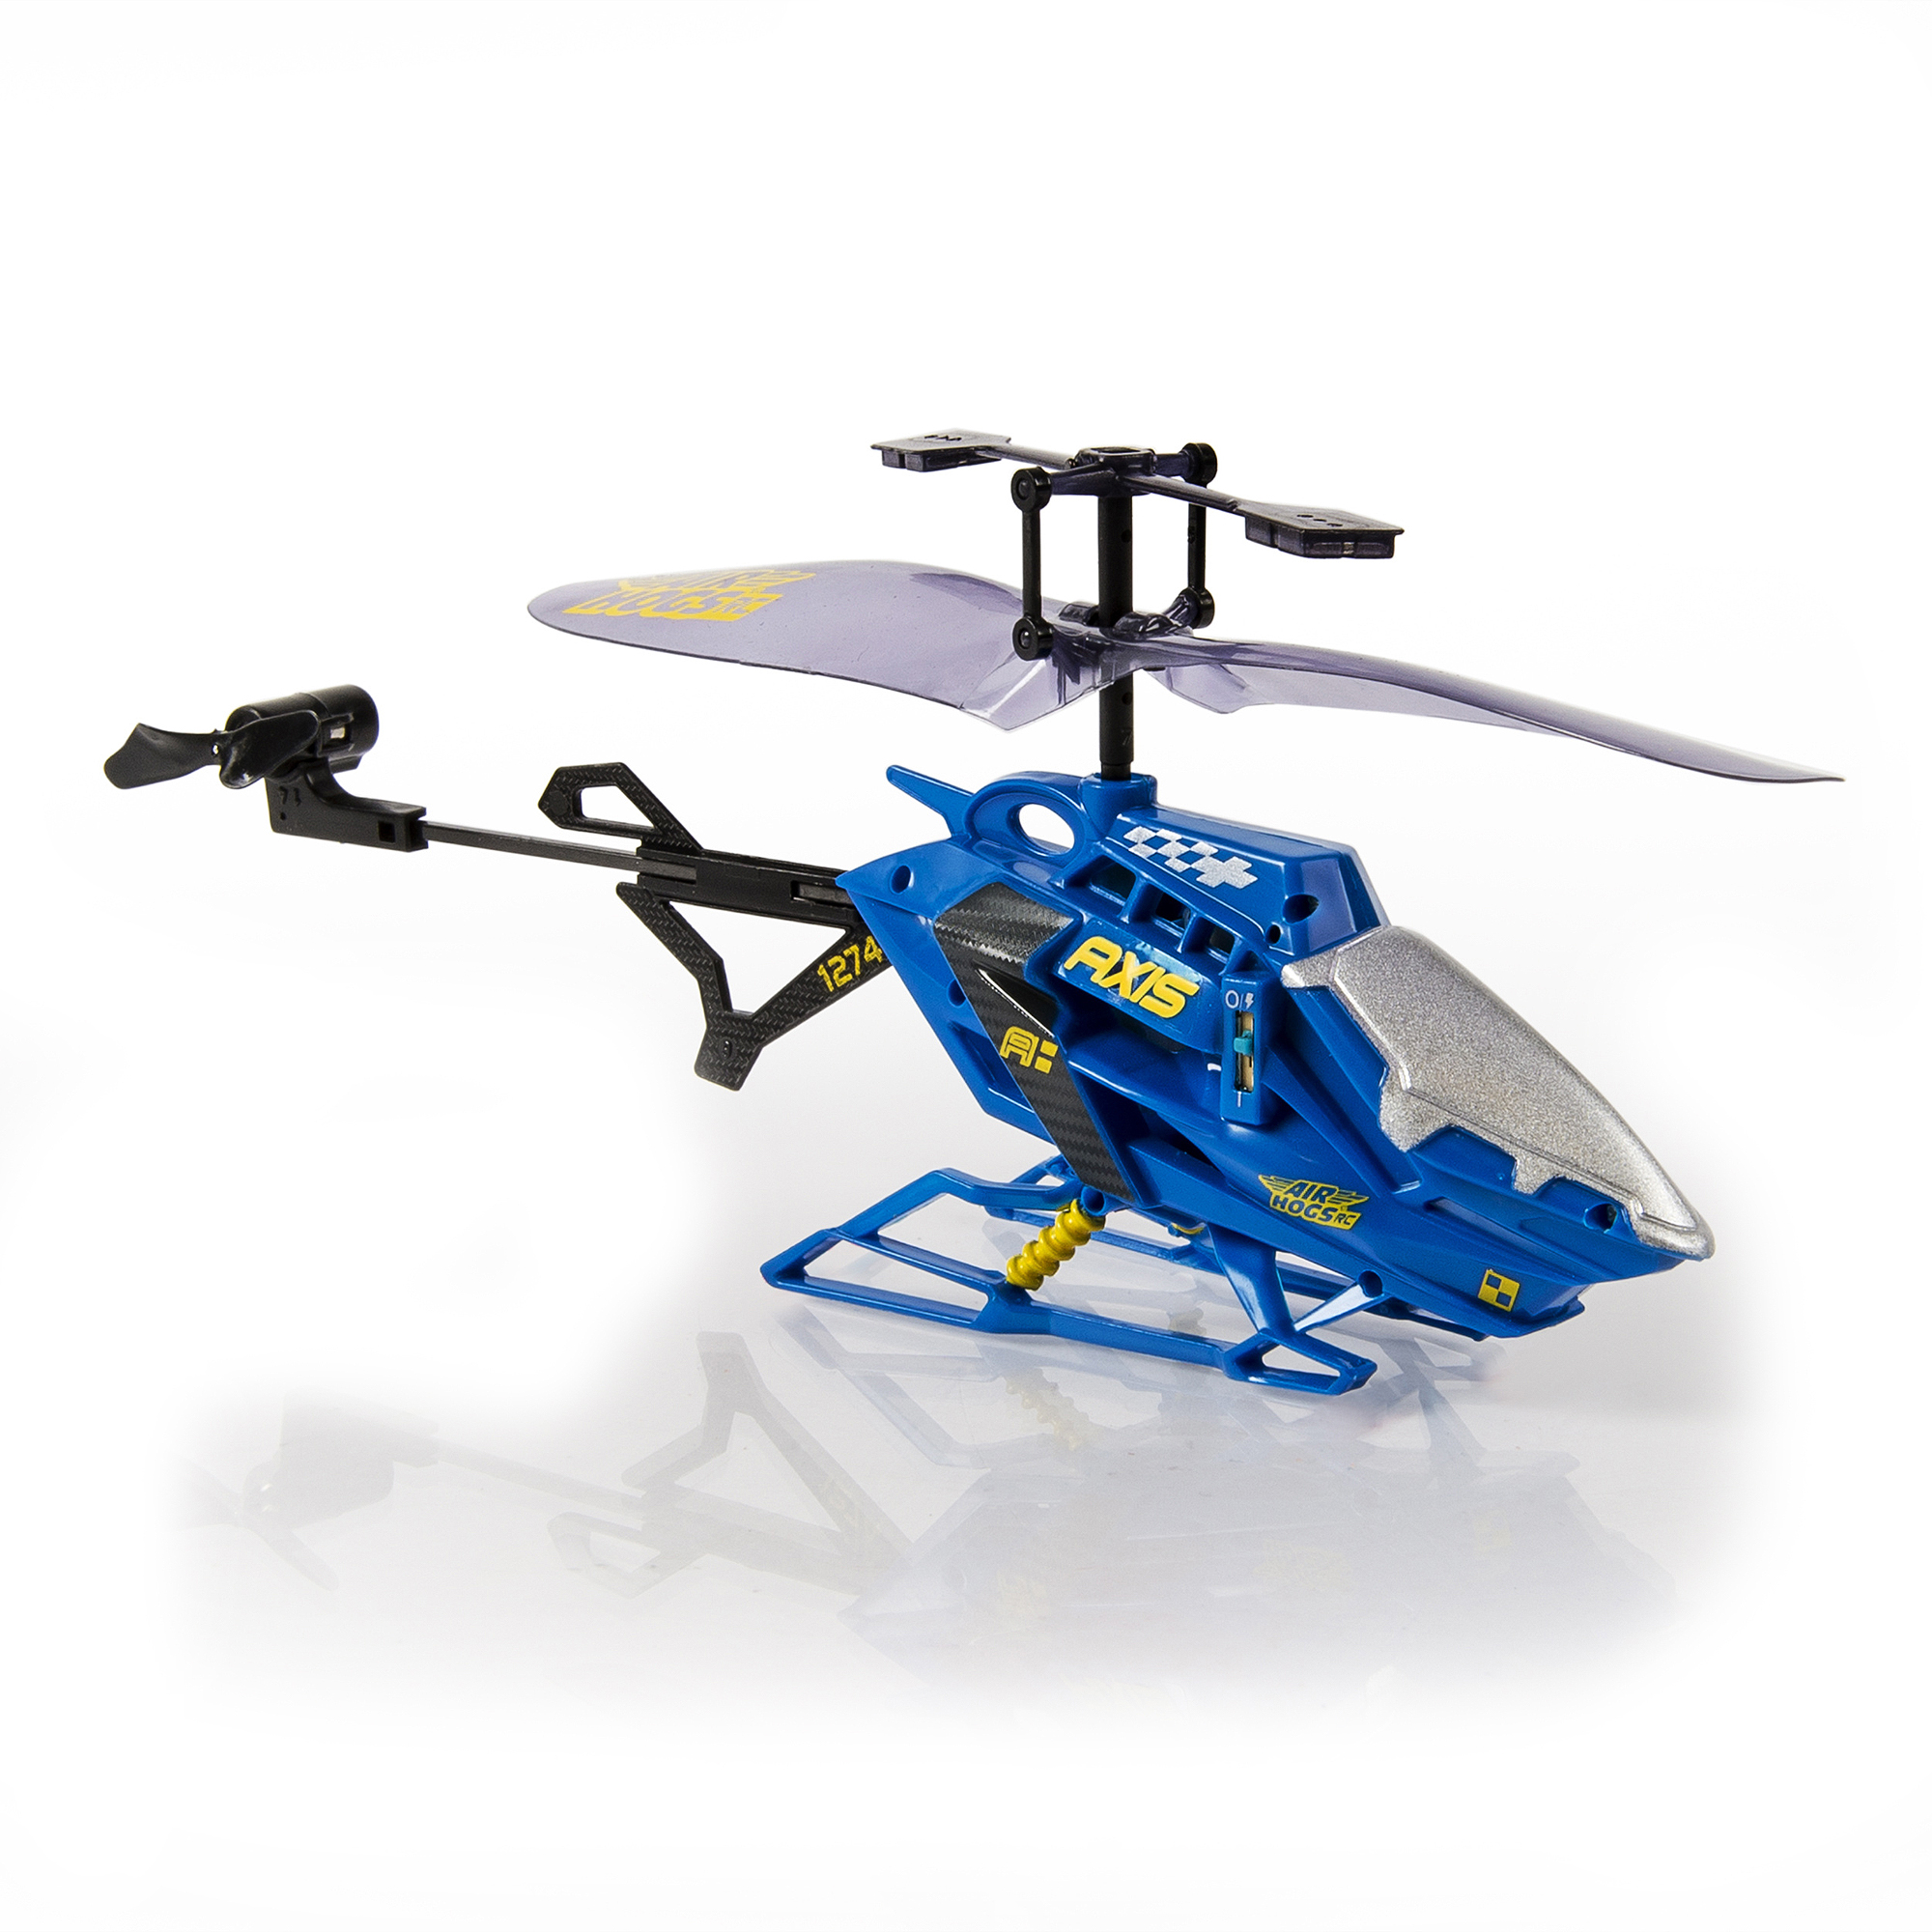 Air Hogs RC Axis 200 R/C Helicopter- in colors Black, Blue, Gray, and Red